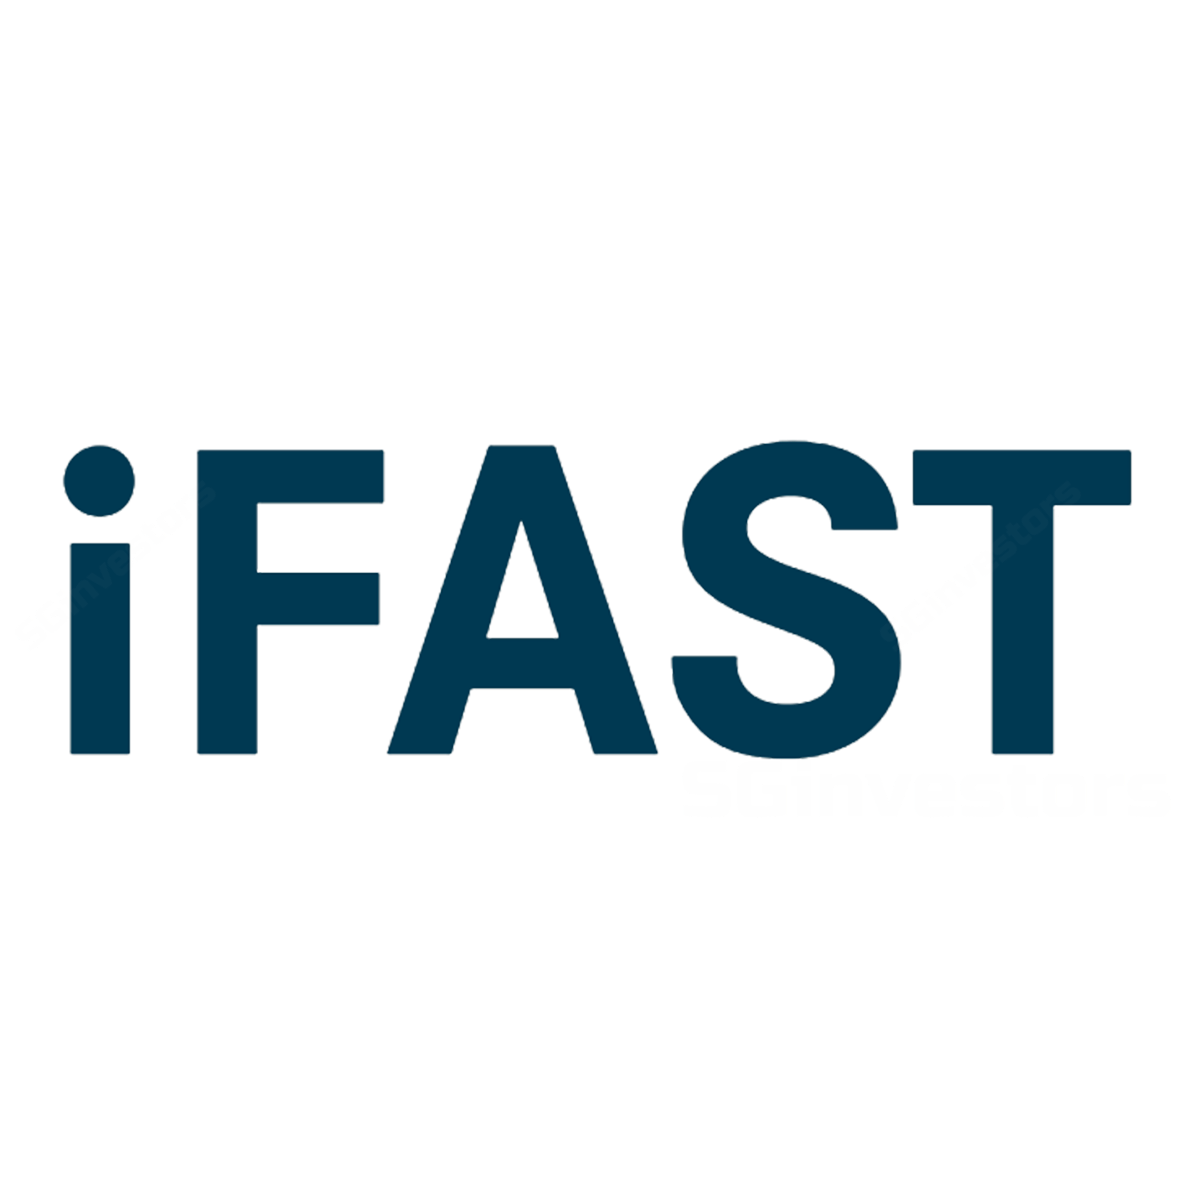 IFAST Corporation (IFAST SP) - Maybank Kim Eng 2017-10-13: A Leading Investment Products Supermarket